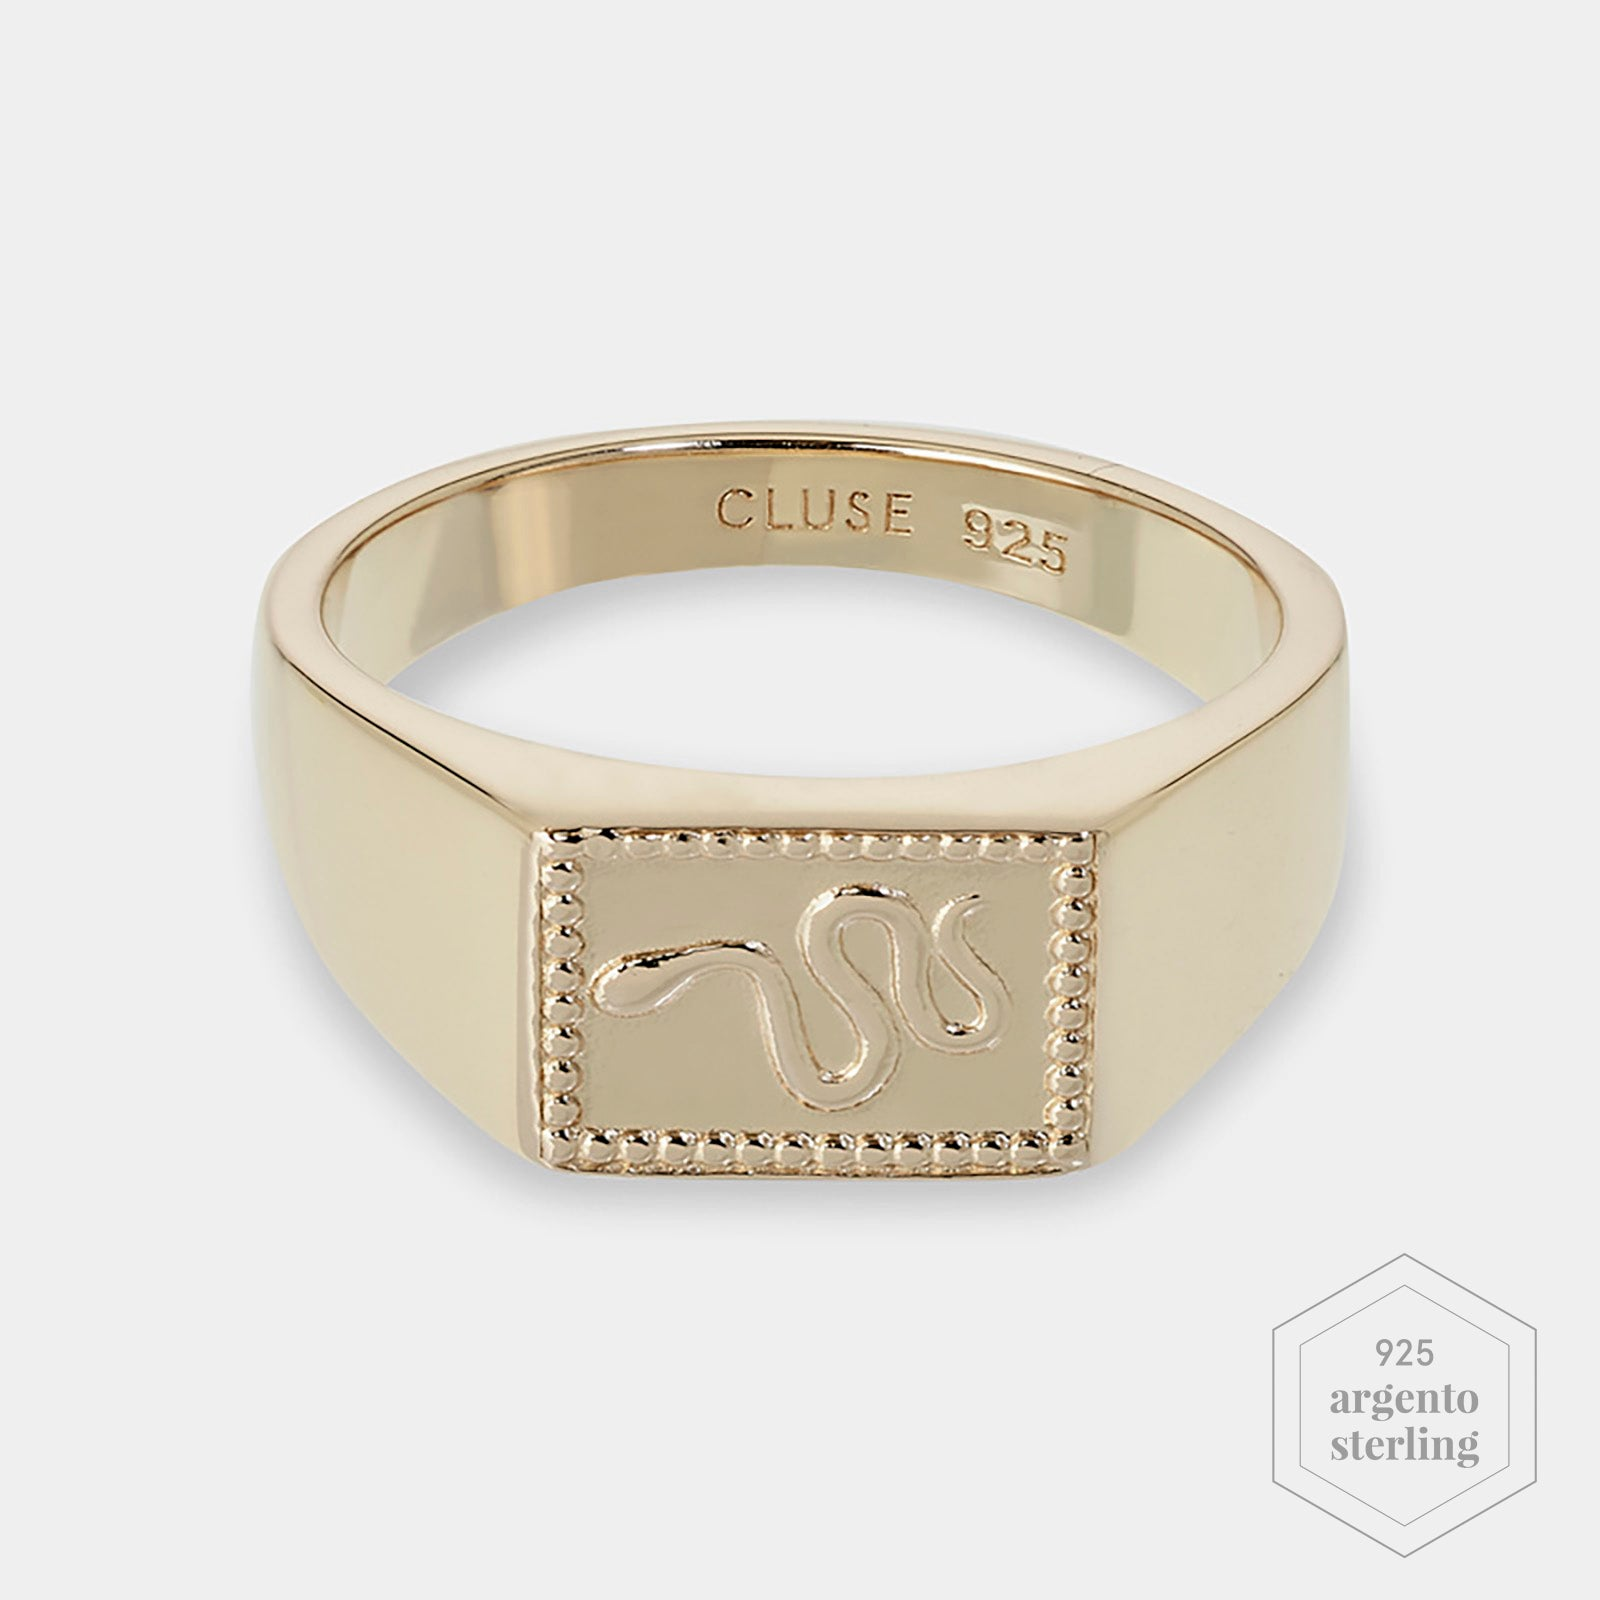 CLUSE Force Tropicale Gold Signet Rectangular Ring 56 CLJ41012-56 - Anello taglia 56